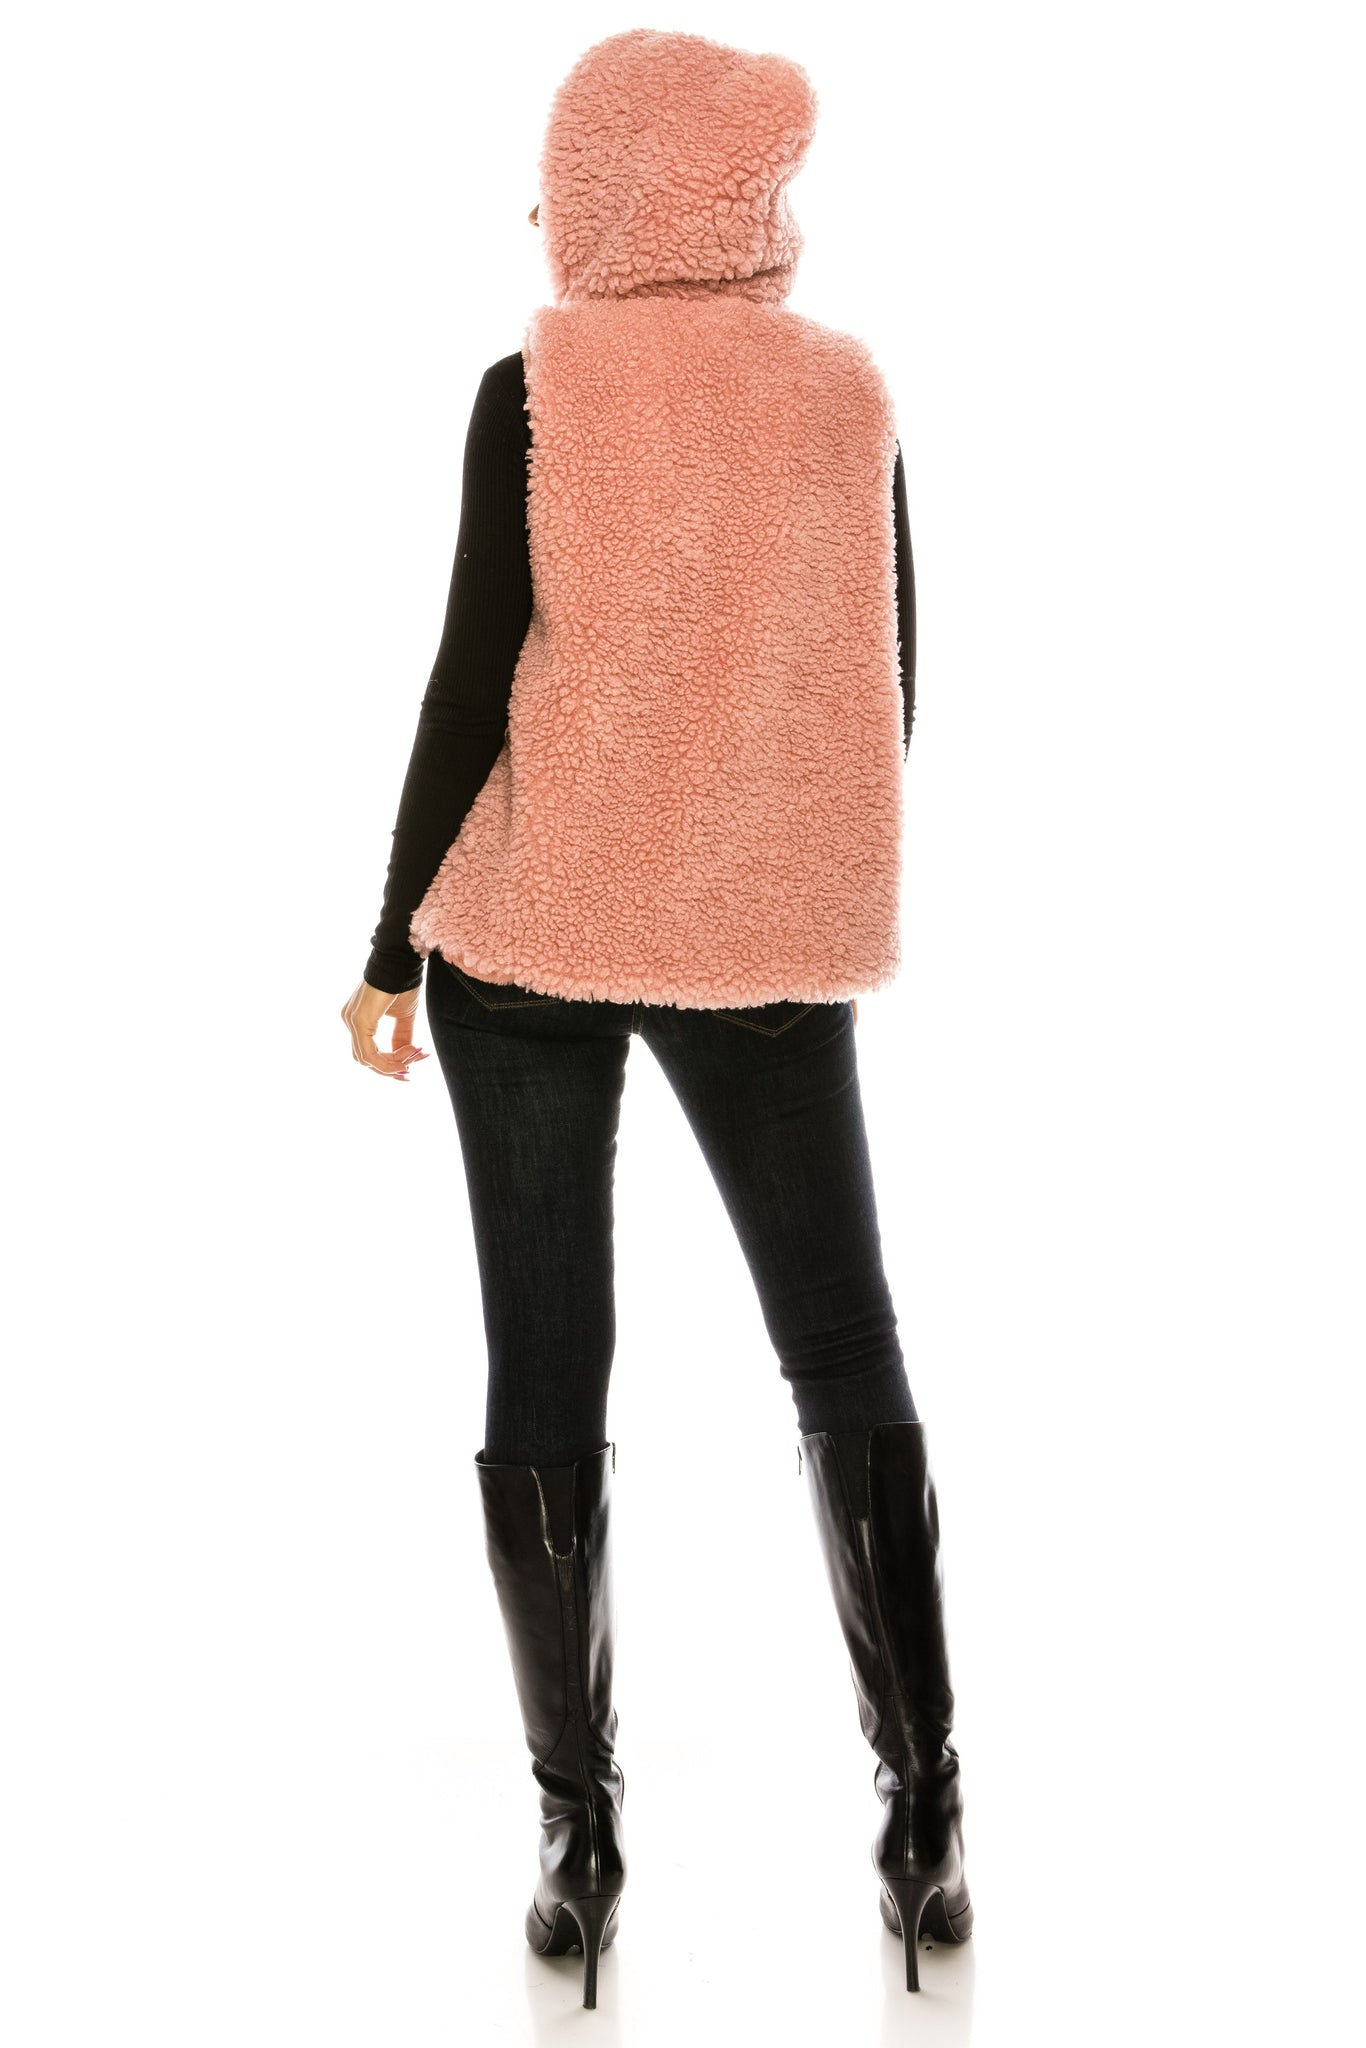 PC-106DP Faux Fur Vest With Hoodie